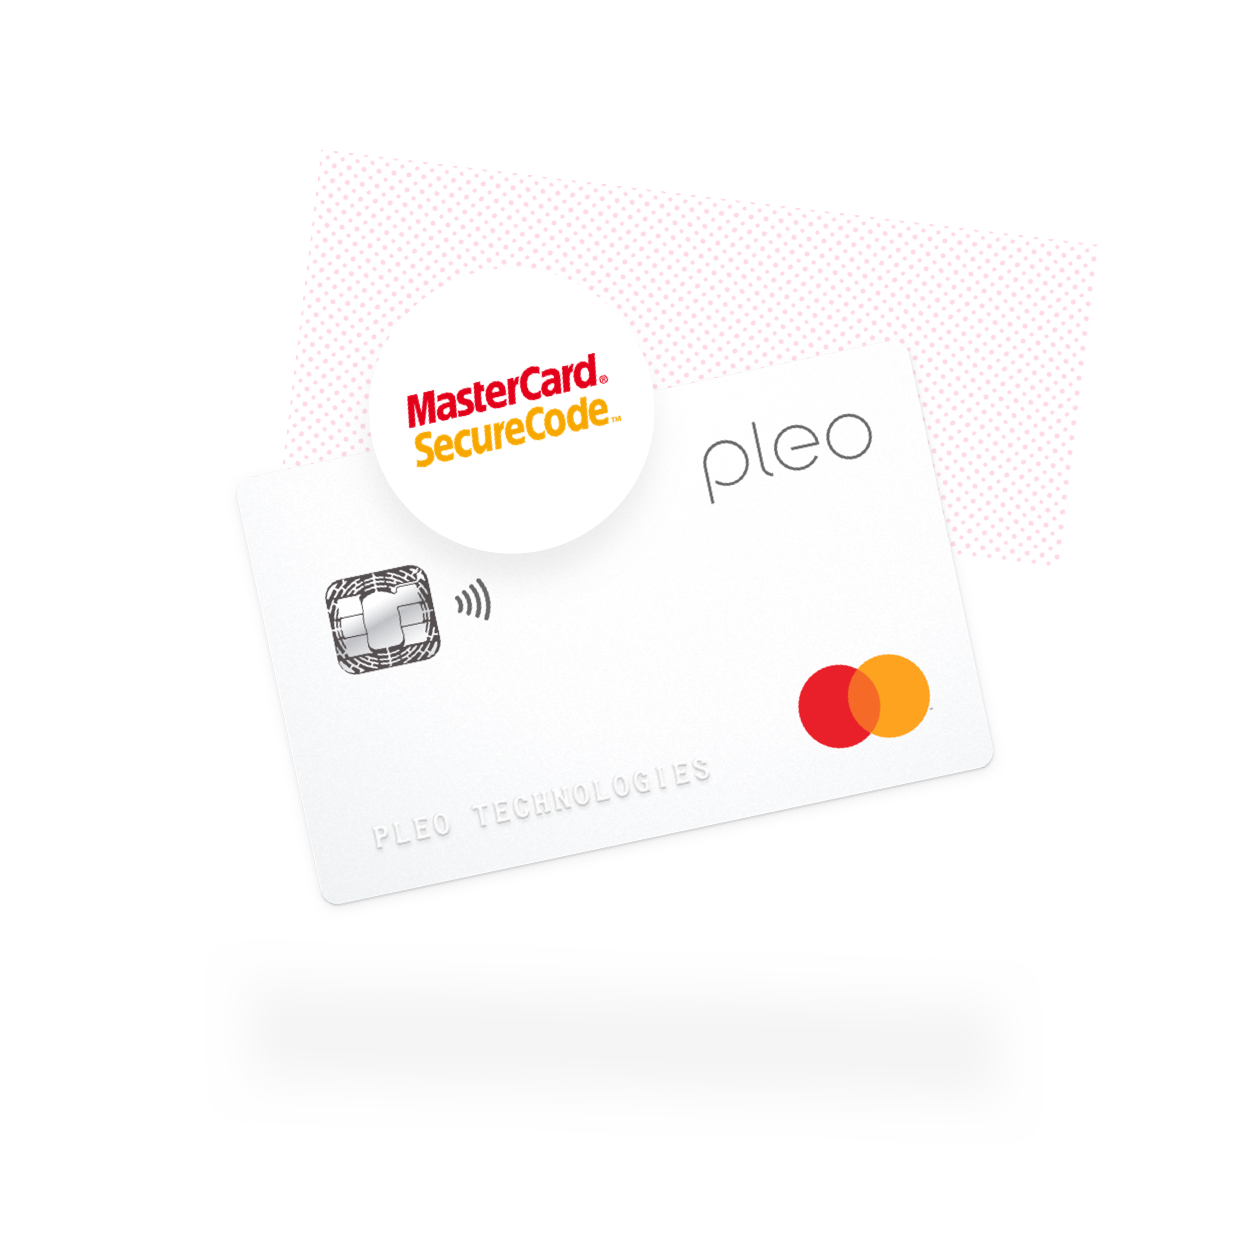 3D Secure payments are here!